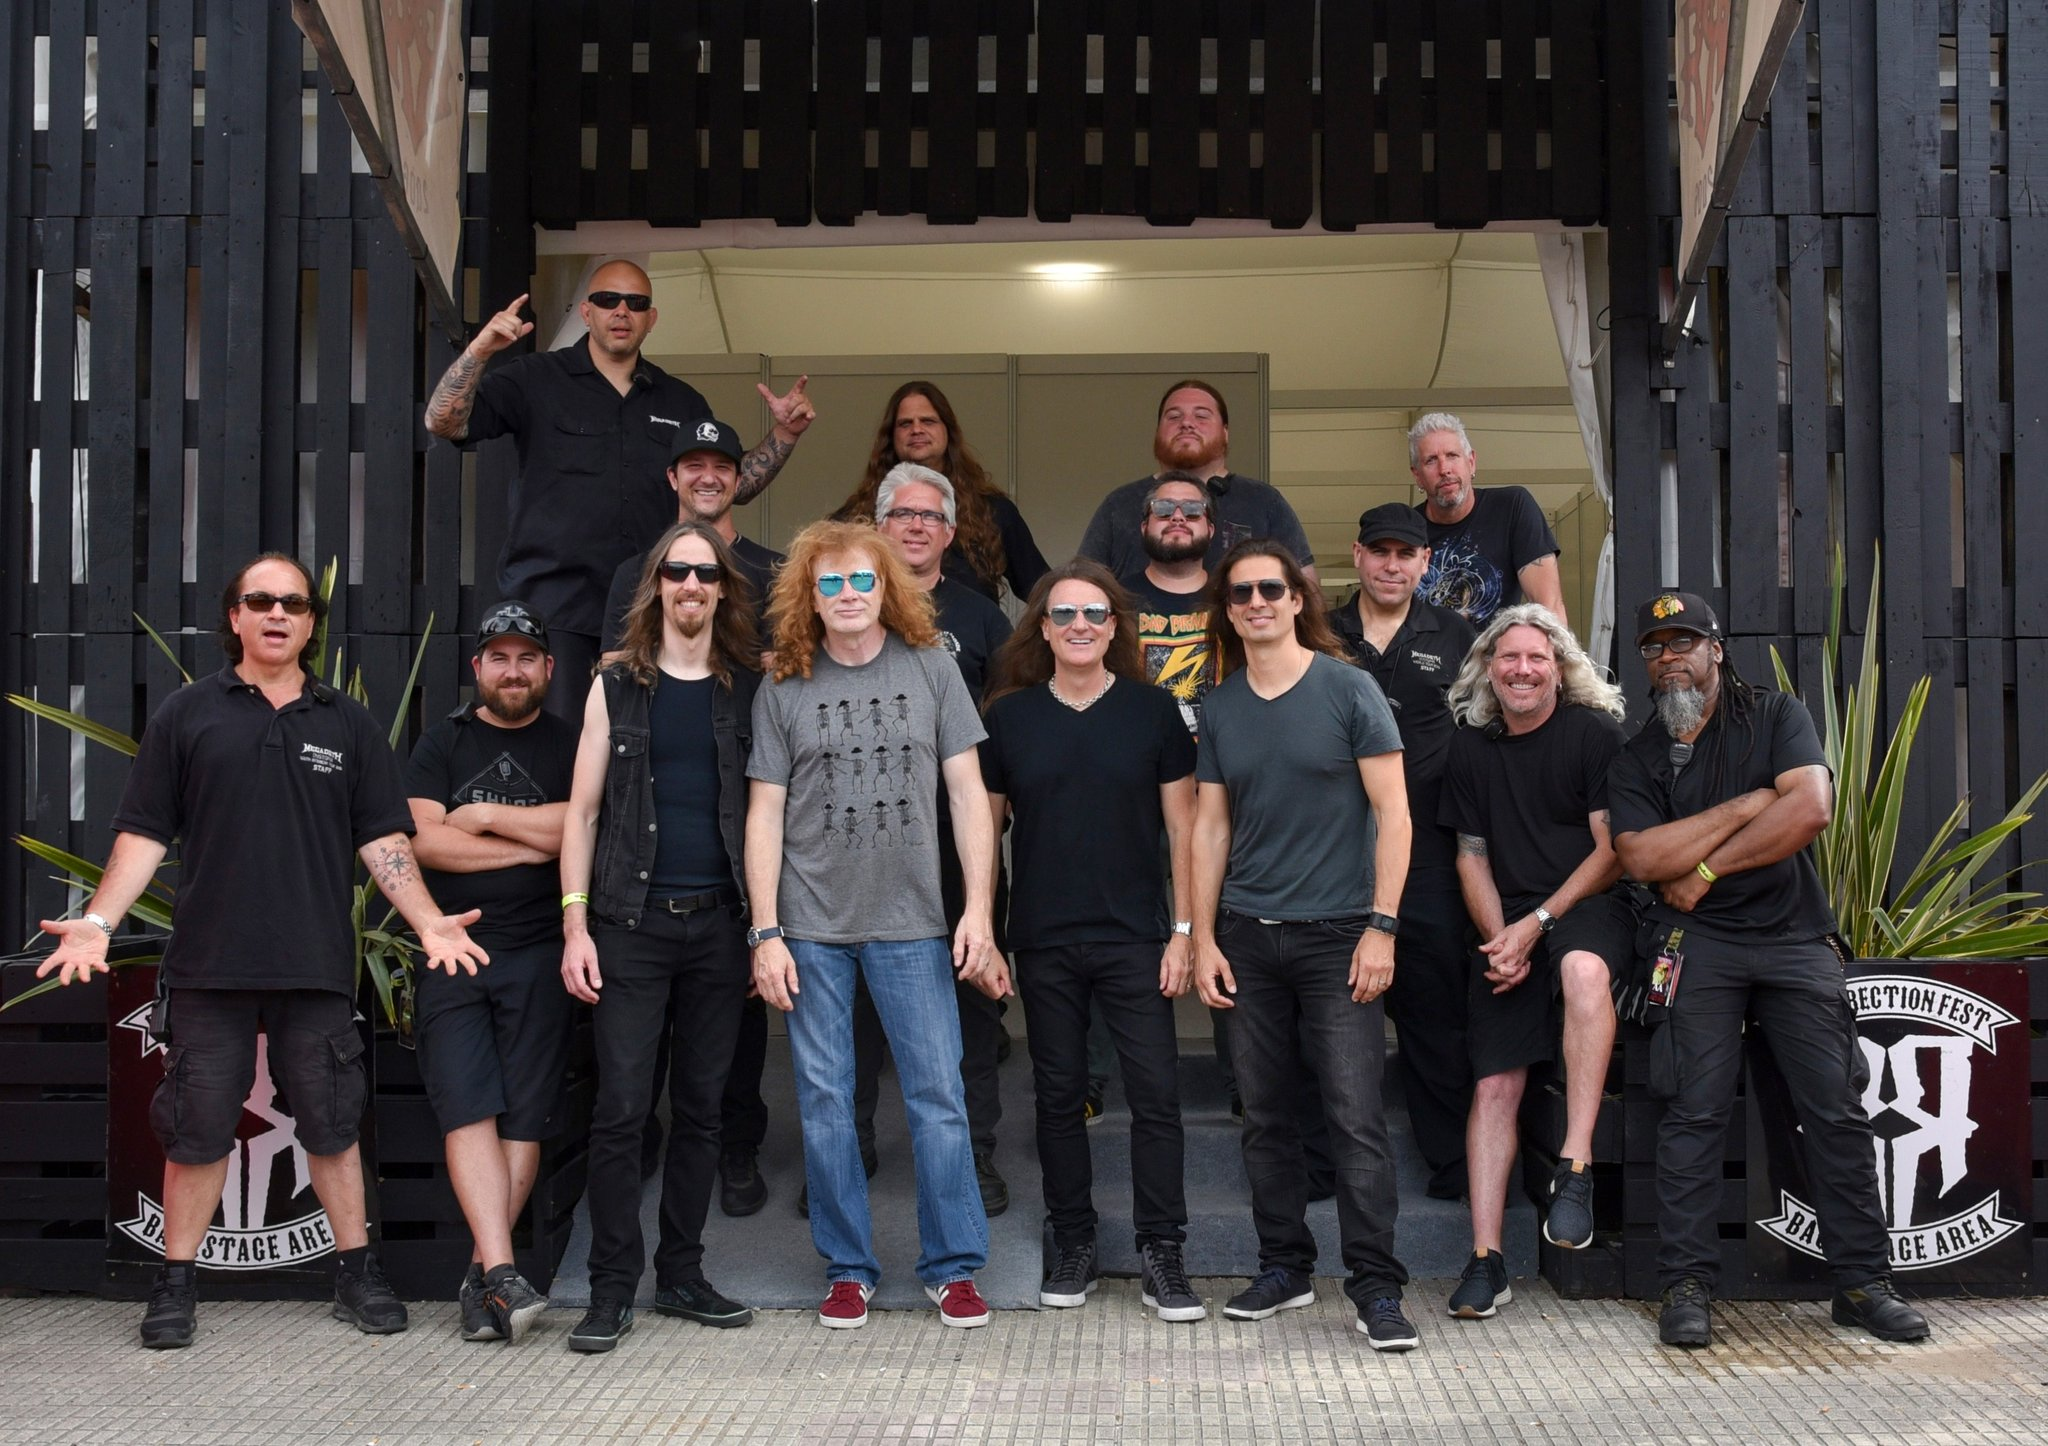 Thanks to our crew, the bands we shared stages with, and everyone who came out to see us on the European summer tour. It was a pleasure to play for you, and now we head home to start working on the next album! See you soon! https://t.co/ONwPta9Ywy